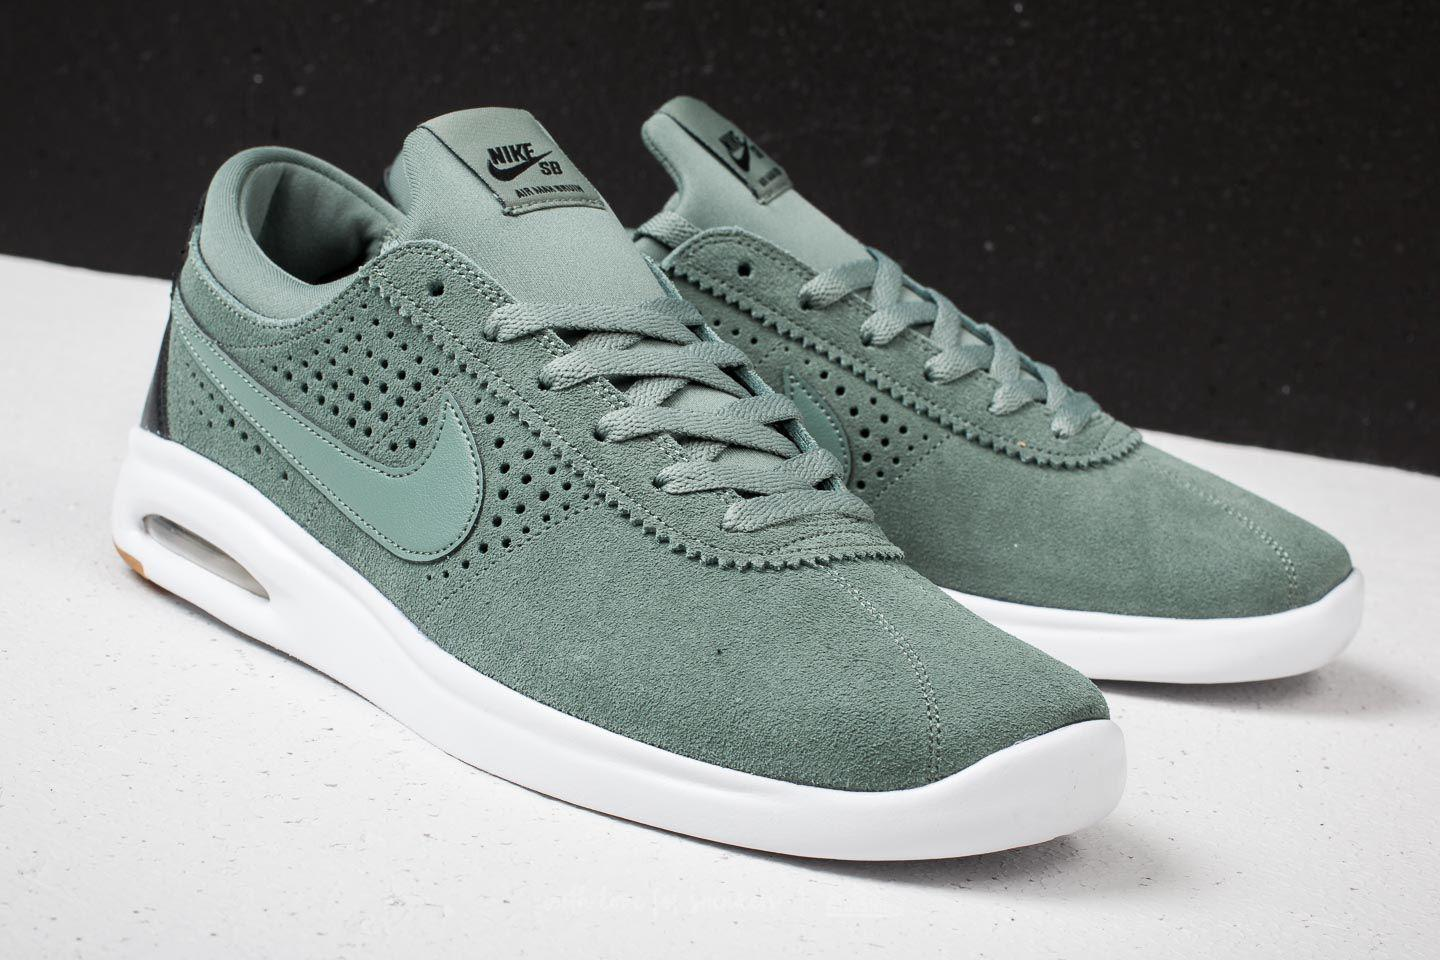 sale retailer daeea 7dba5 Nike Sb Air Max Bruin Vapor Clay Green  Clay Green-white in Green ...